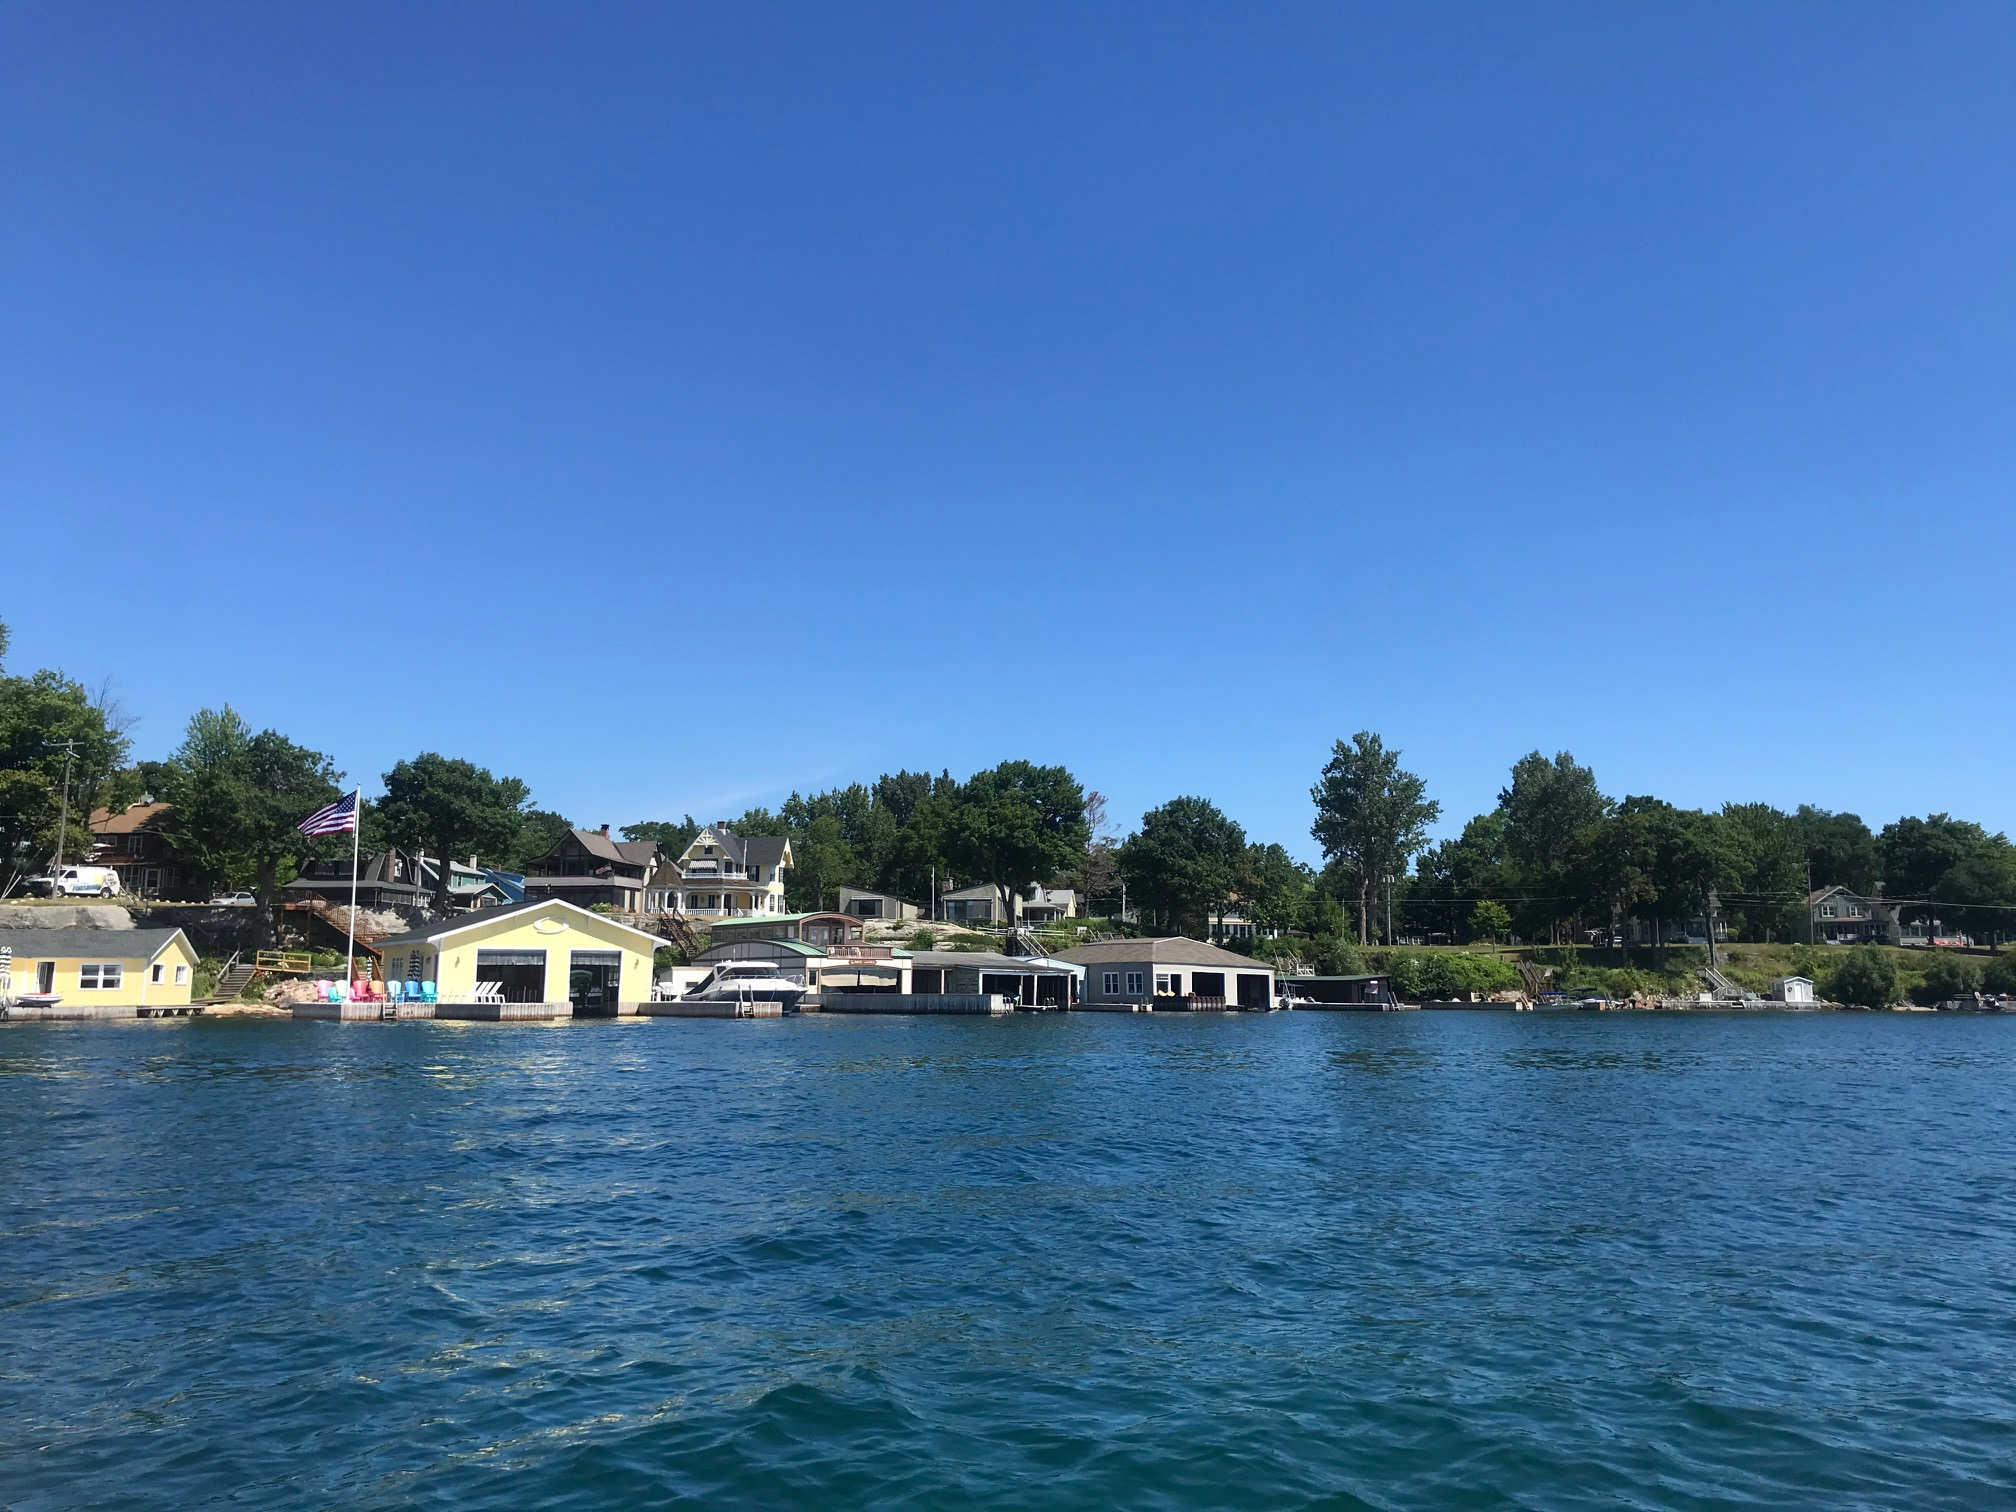 NYC Road Trip to the Idyllic 1000 Islands with Kids